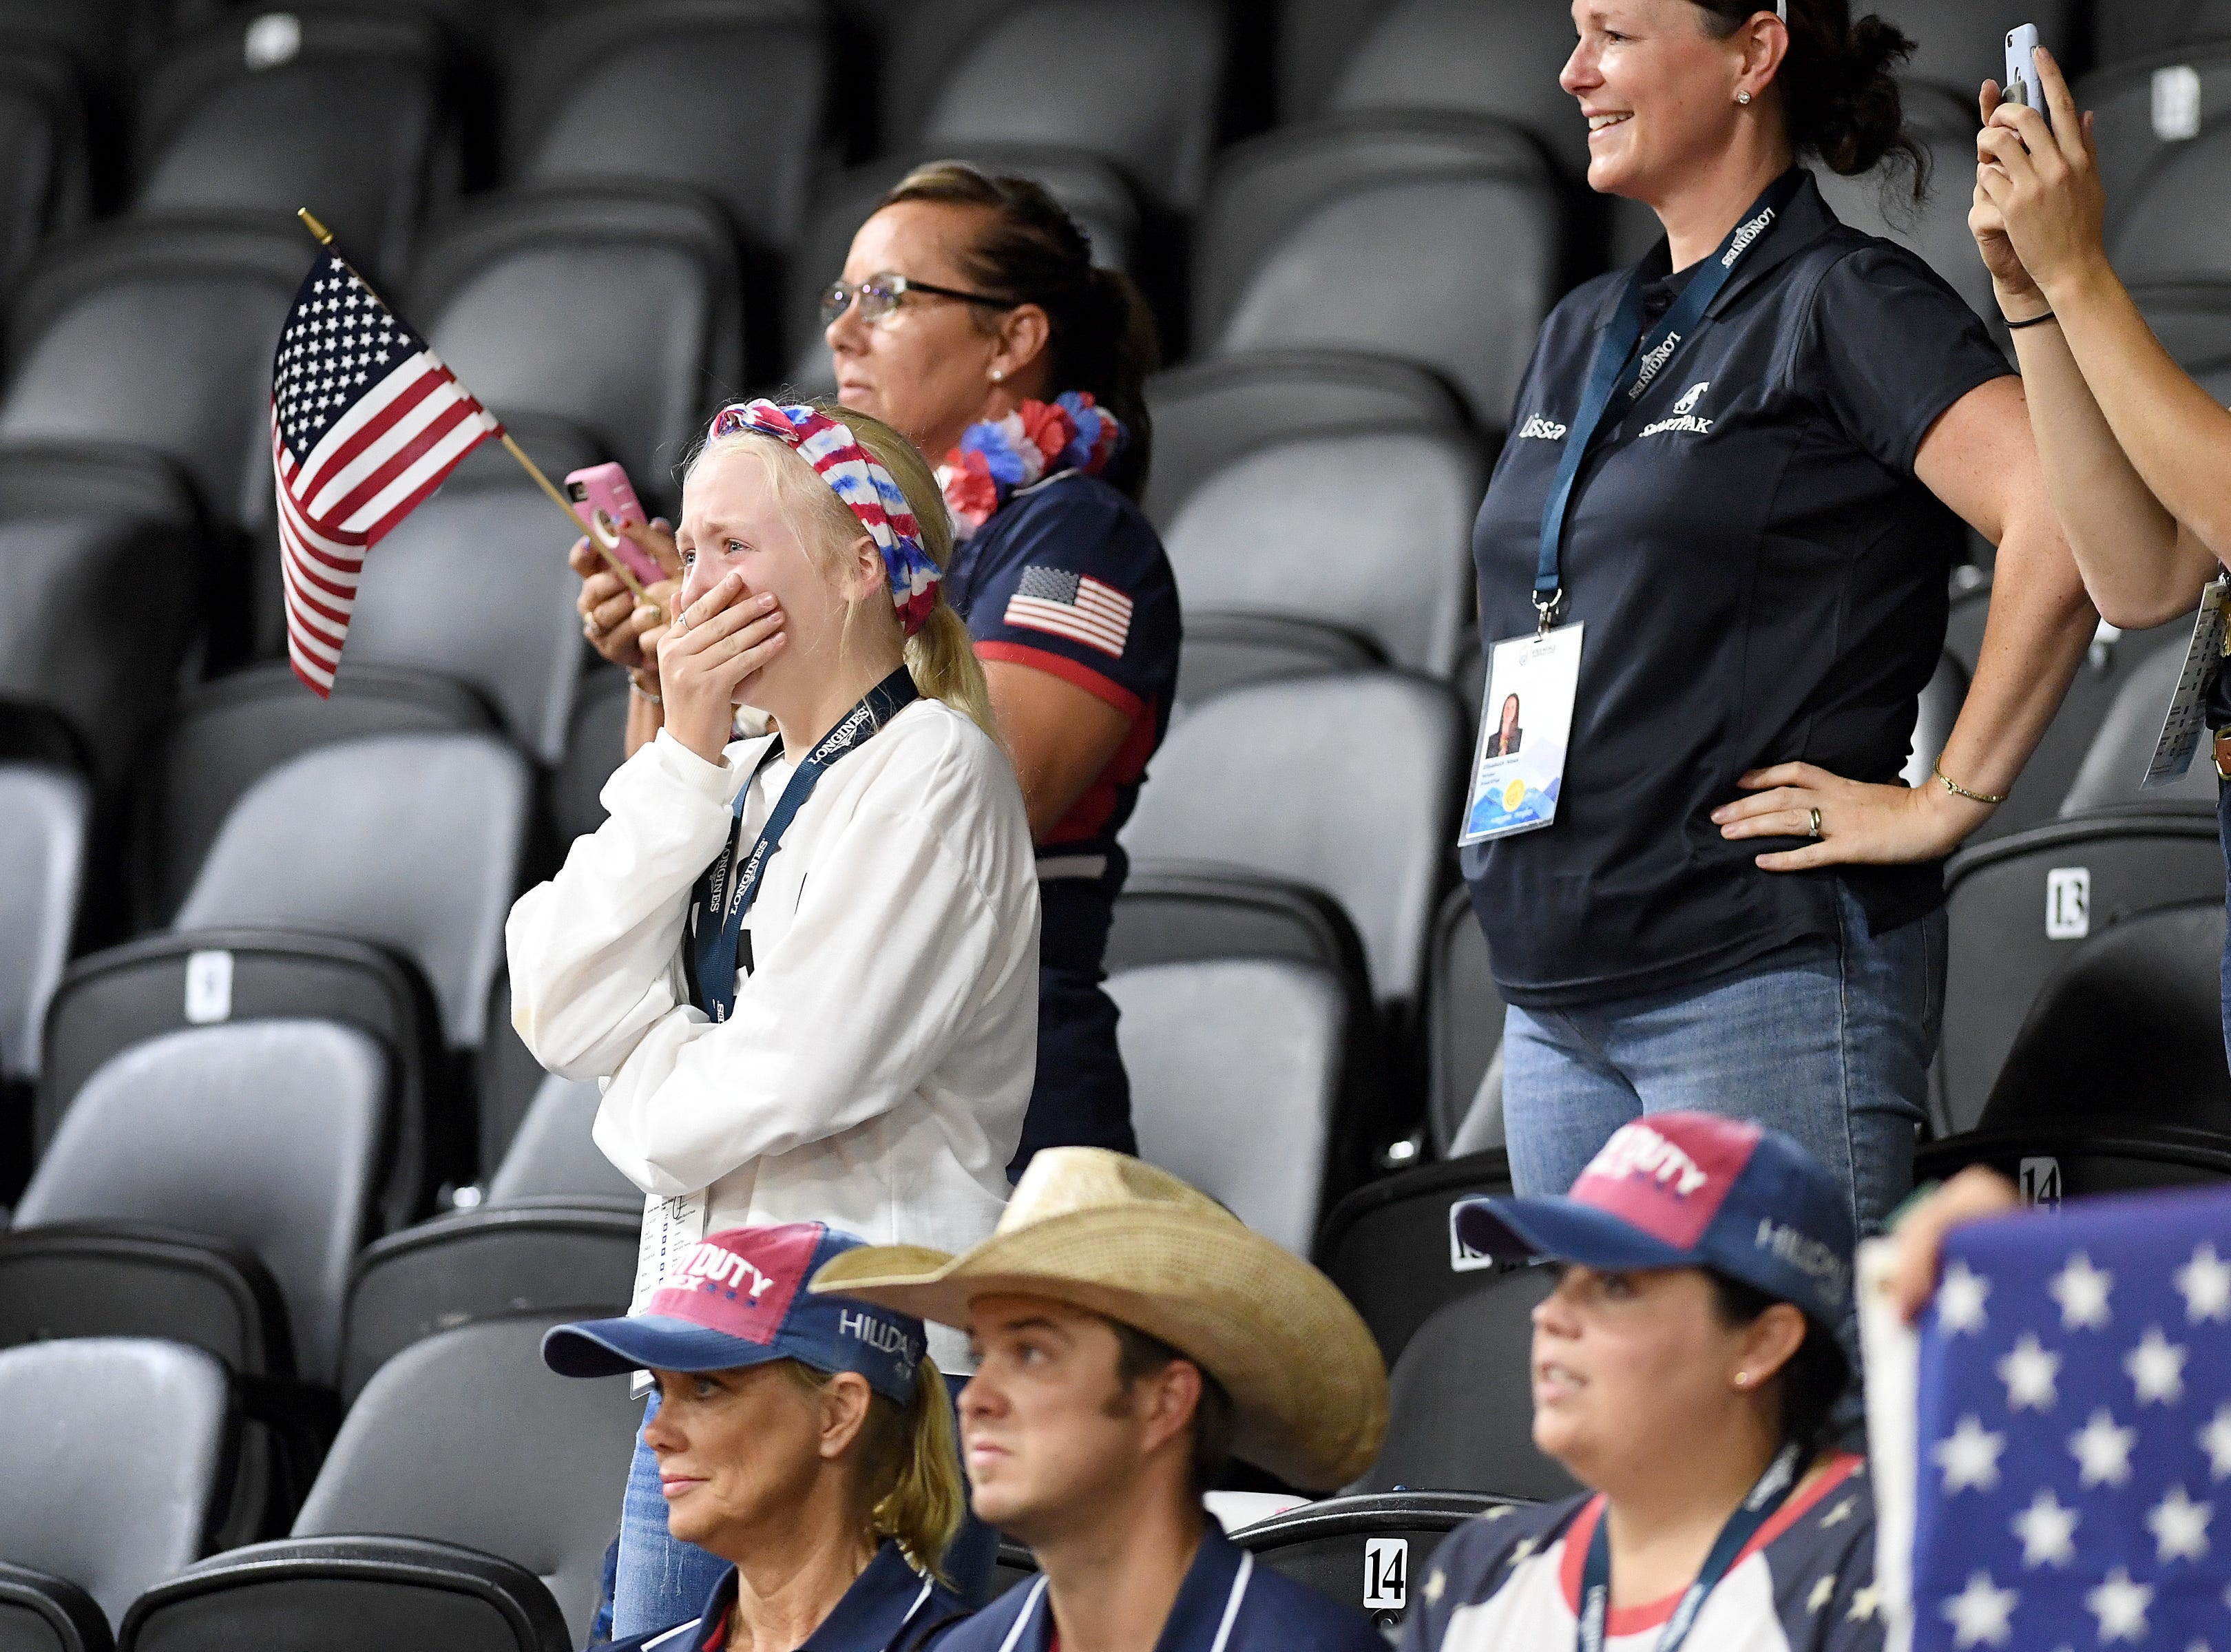 Cade Mccutcheon's little sister, Carlee, 12, both of Texas, is overcome with emotion as he competes during the reining competition of the FEI World Equestrian Games at the Tryon International Equestrian Center on Sept. 12, 2018. Mccutcheon is the youngest U.S. competitor in the games and his performance put him in the lead for the first bout of competition.